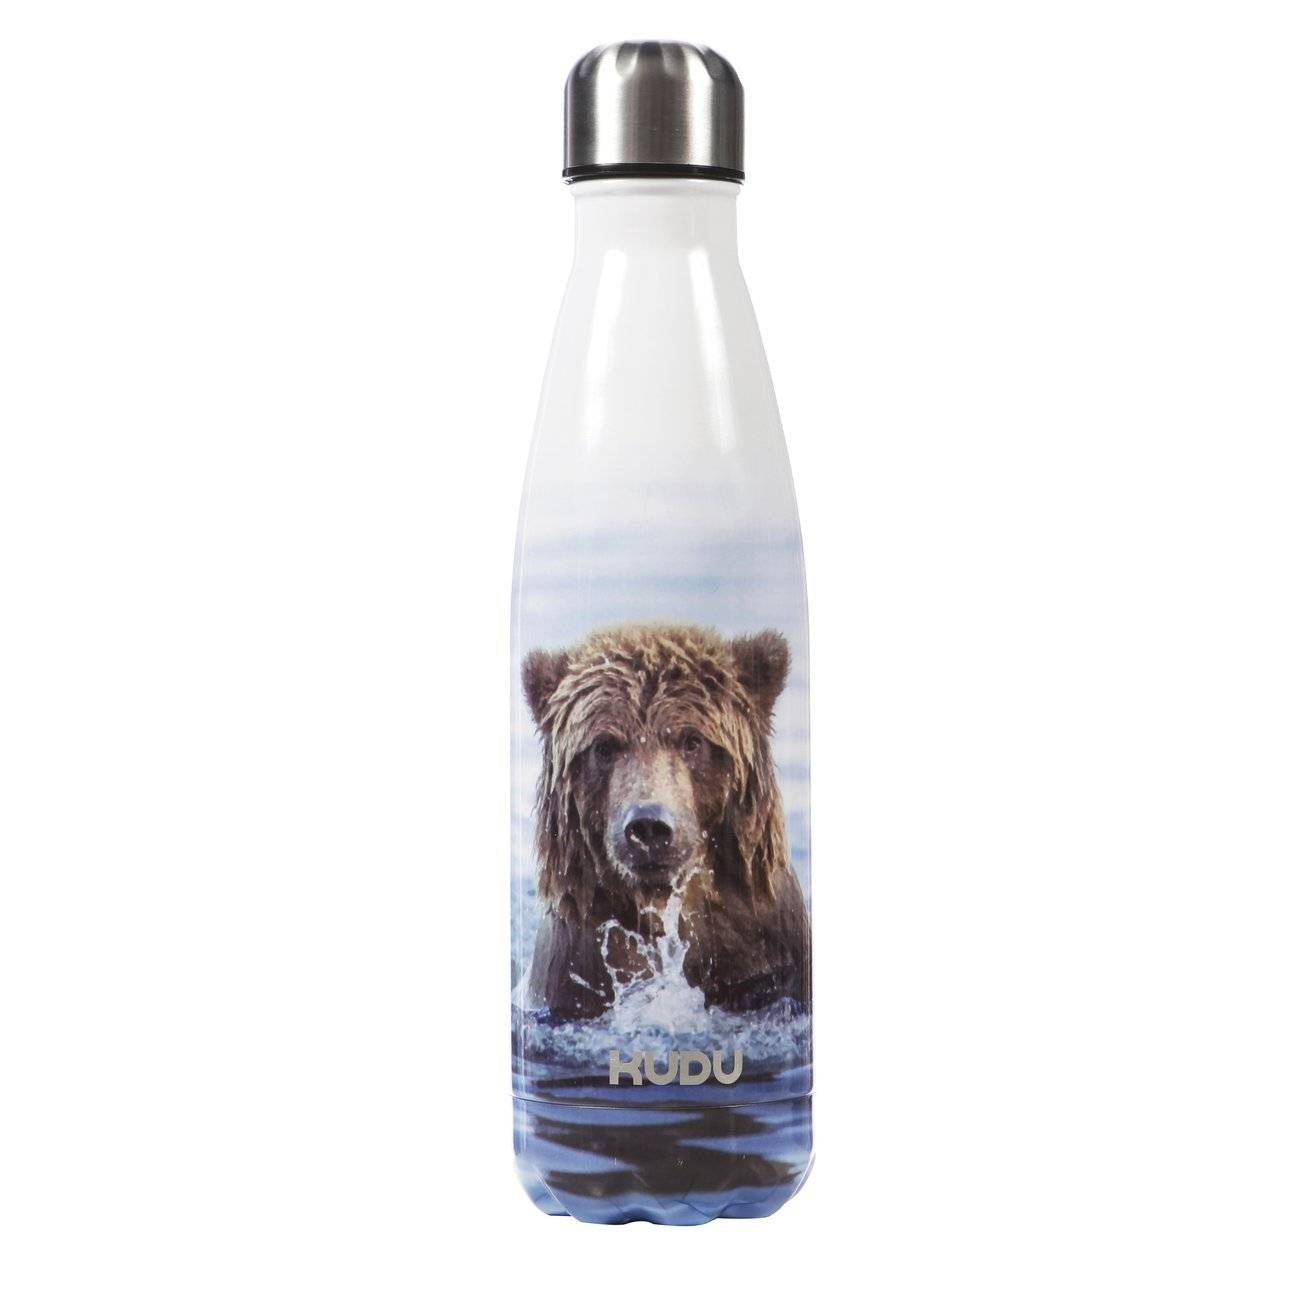 Plastic free alternative reusable water bottle from Sustainable brand Kudu Bottles